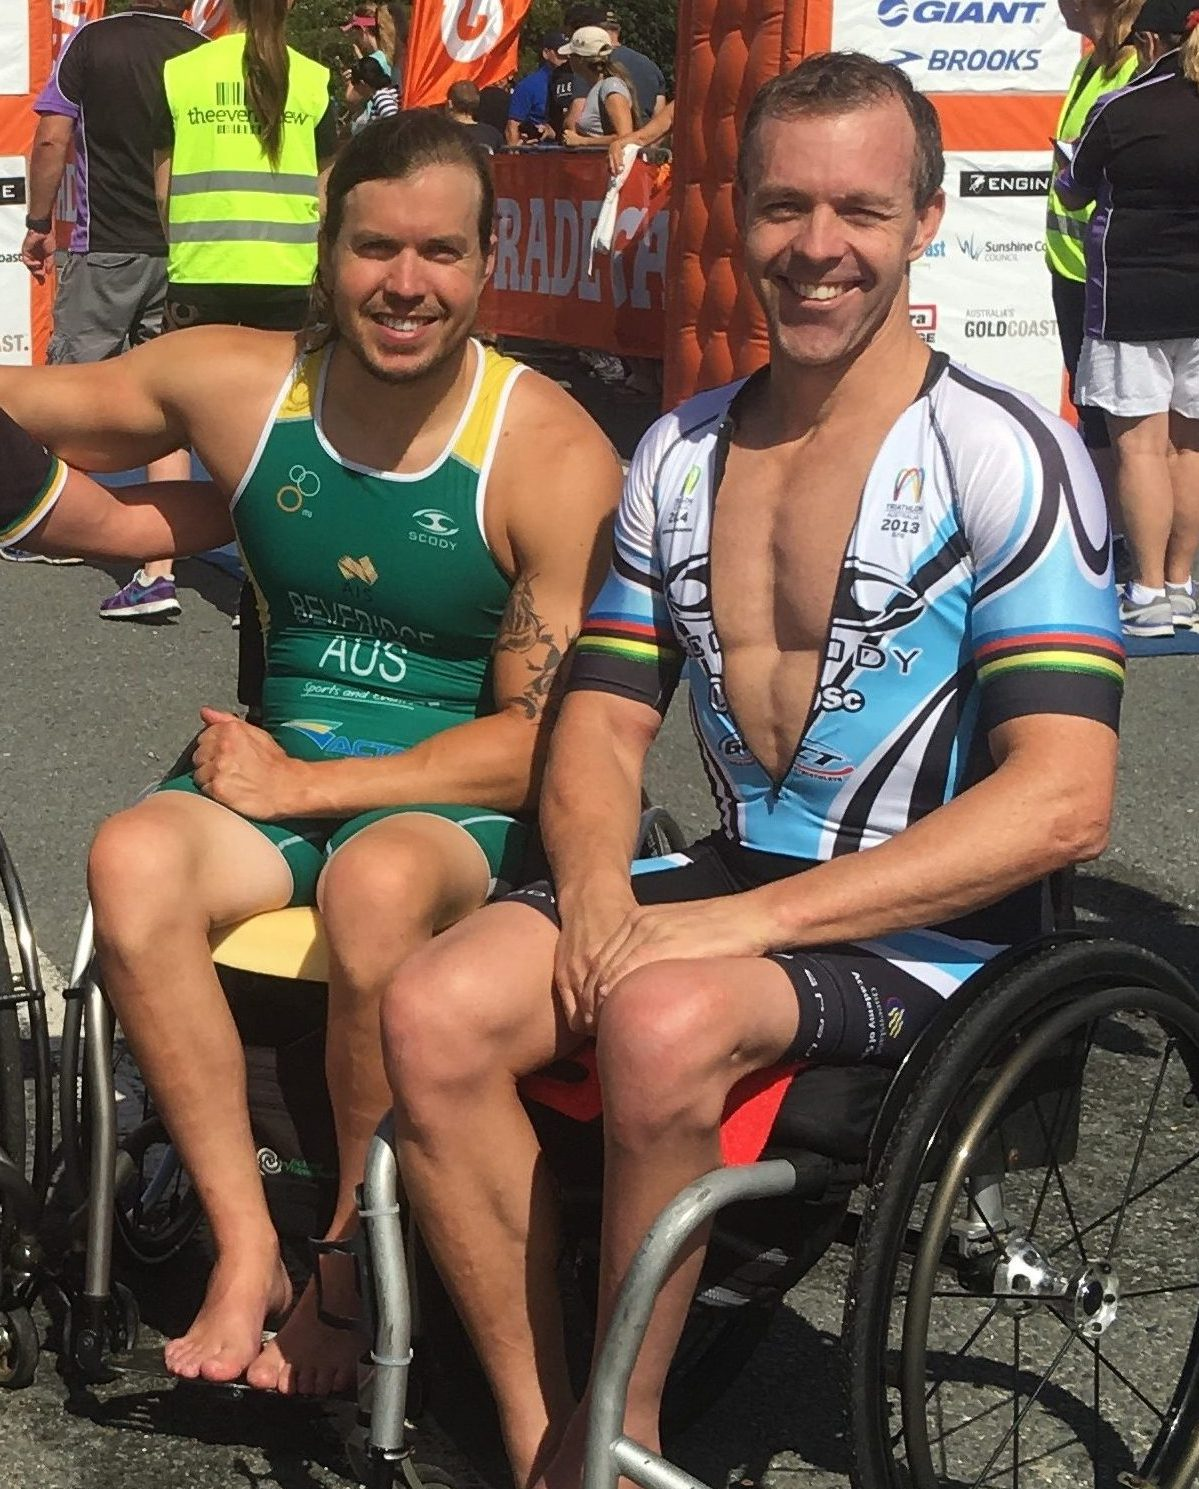 Para-triathletes show golden form in Robina